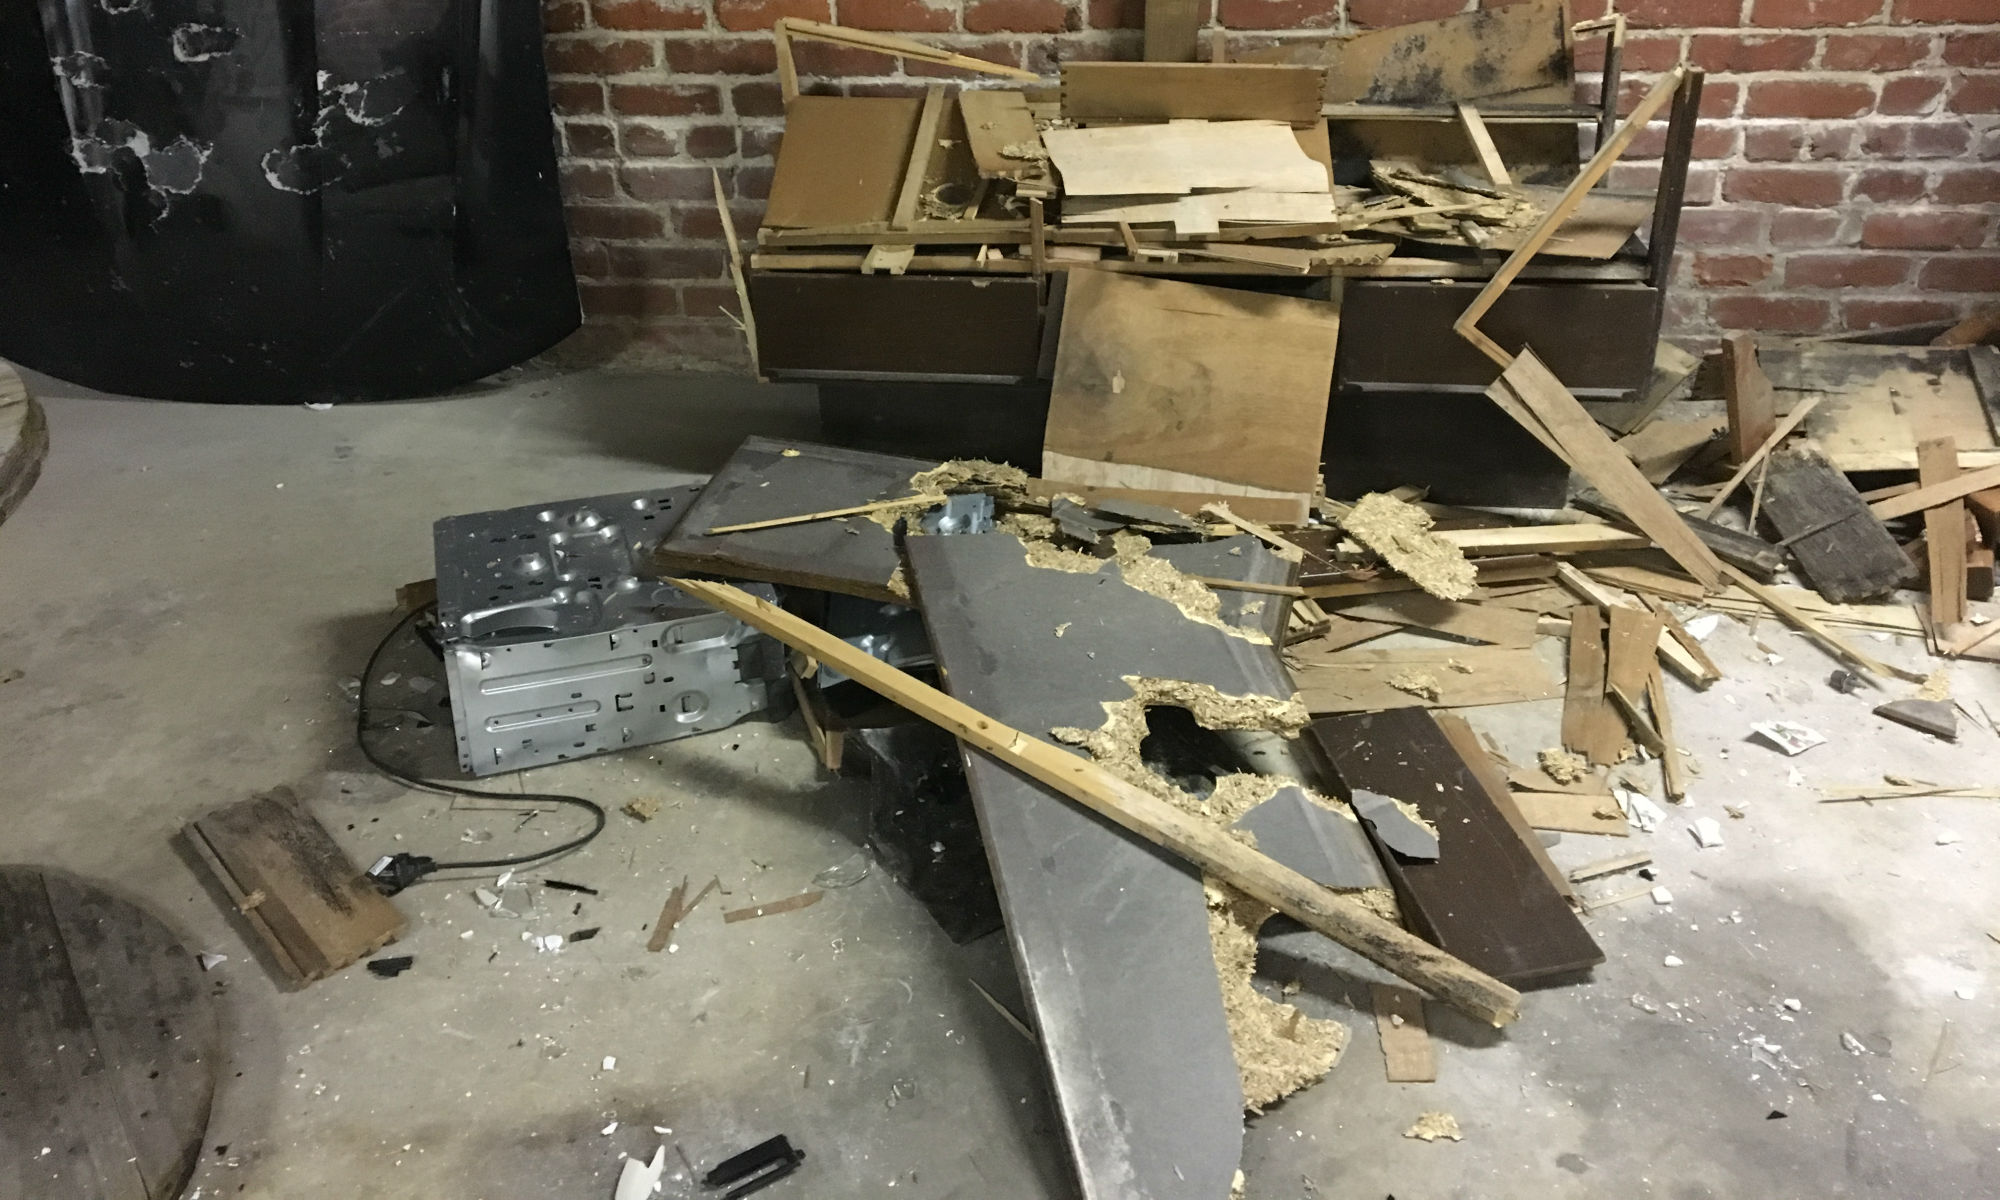 image shows shattered furniture laying in front of car parts and a sledgehammer